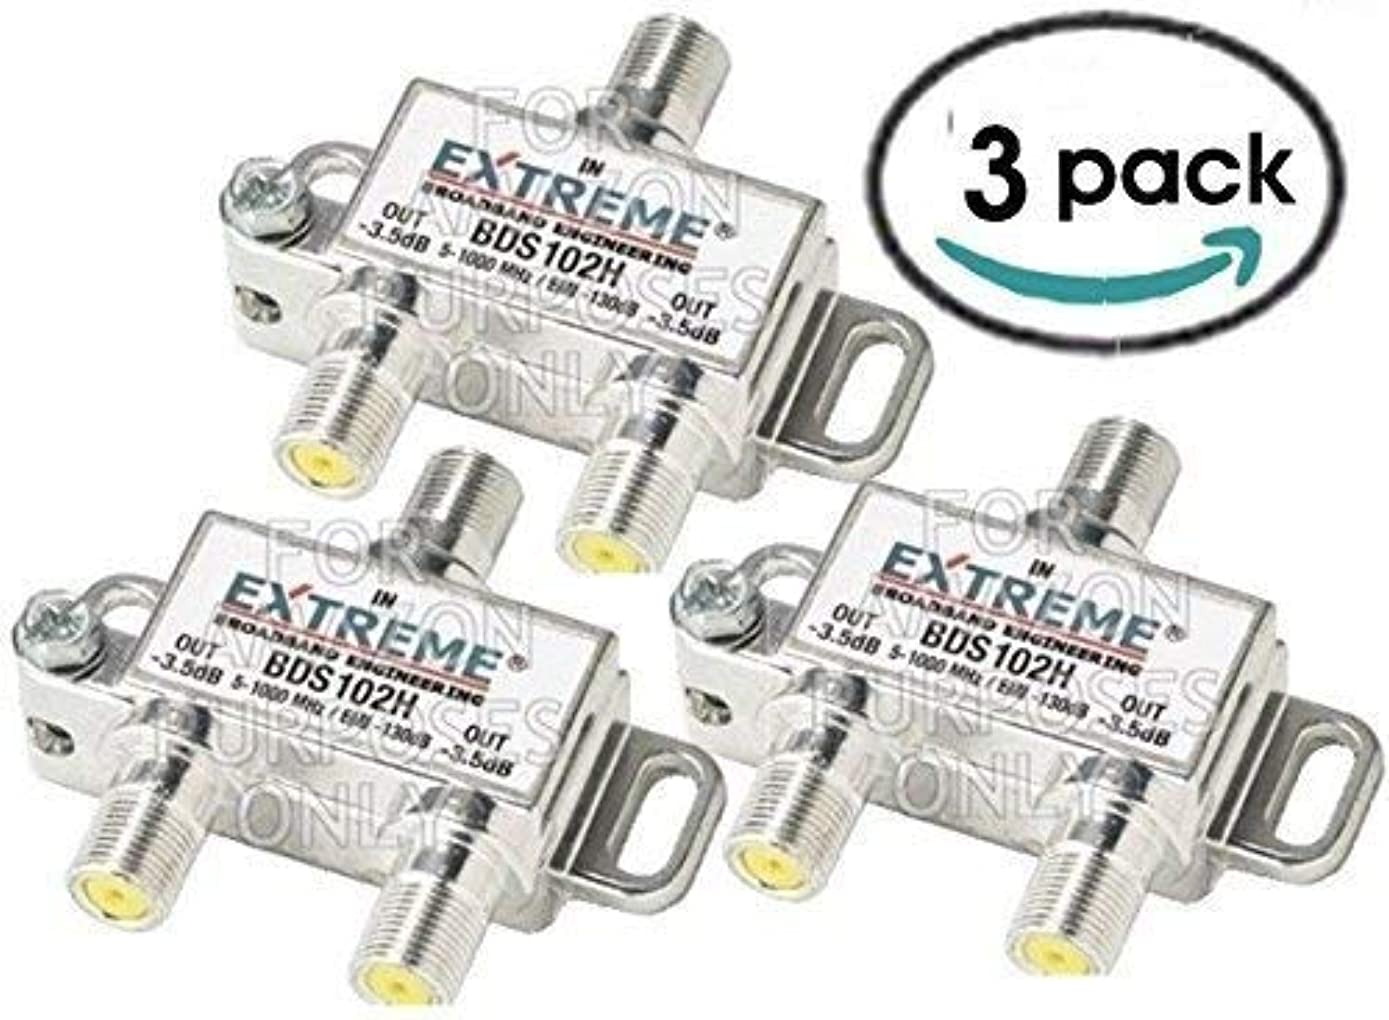 2 WAY EXTREME HD DIGITAL 1GHz HIGH PERFORMANCE COAX CABLE SPLITTER - BDS102H (3 Pack)